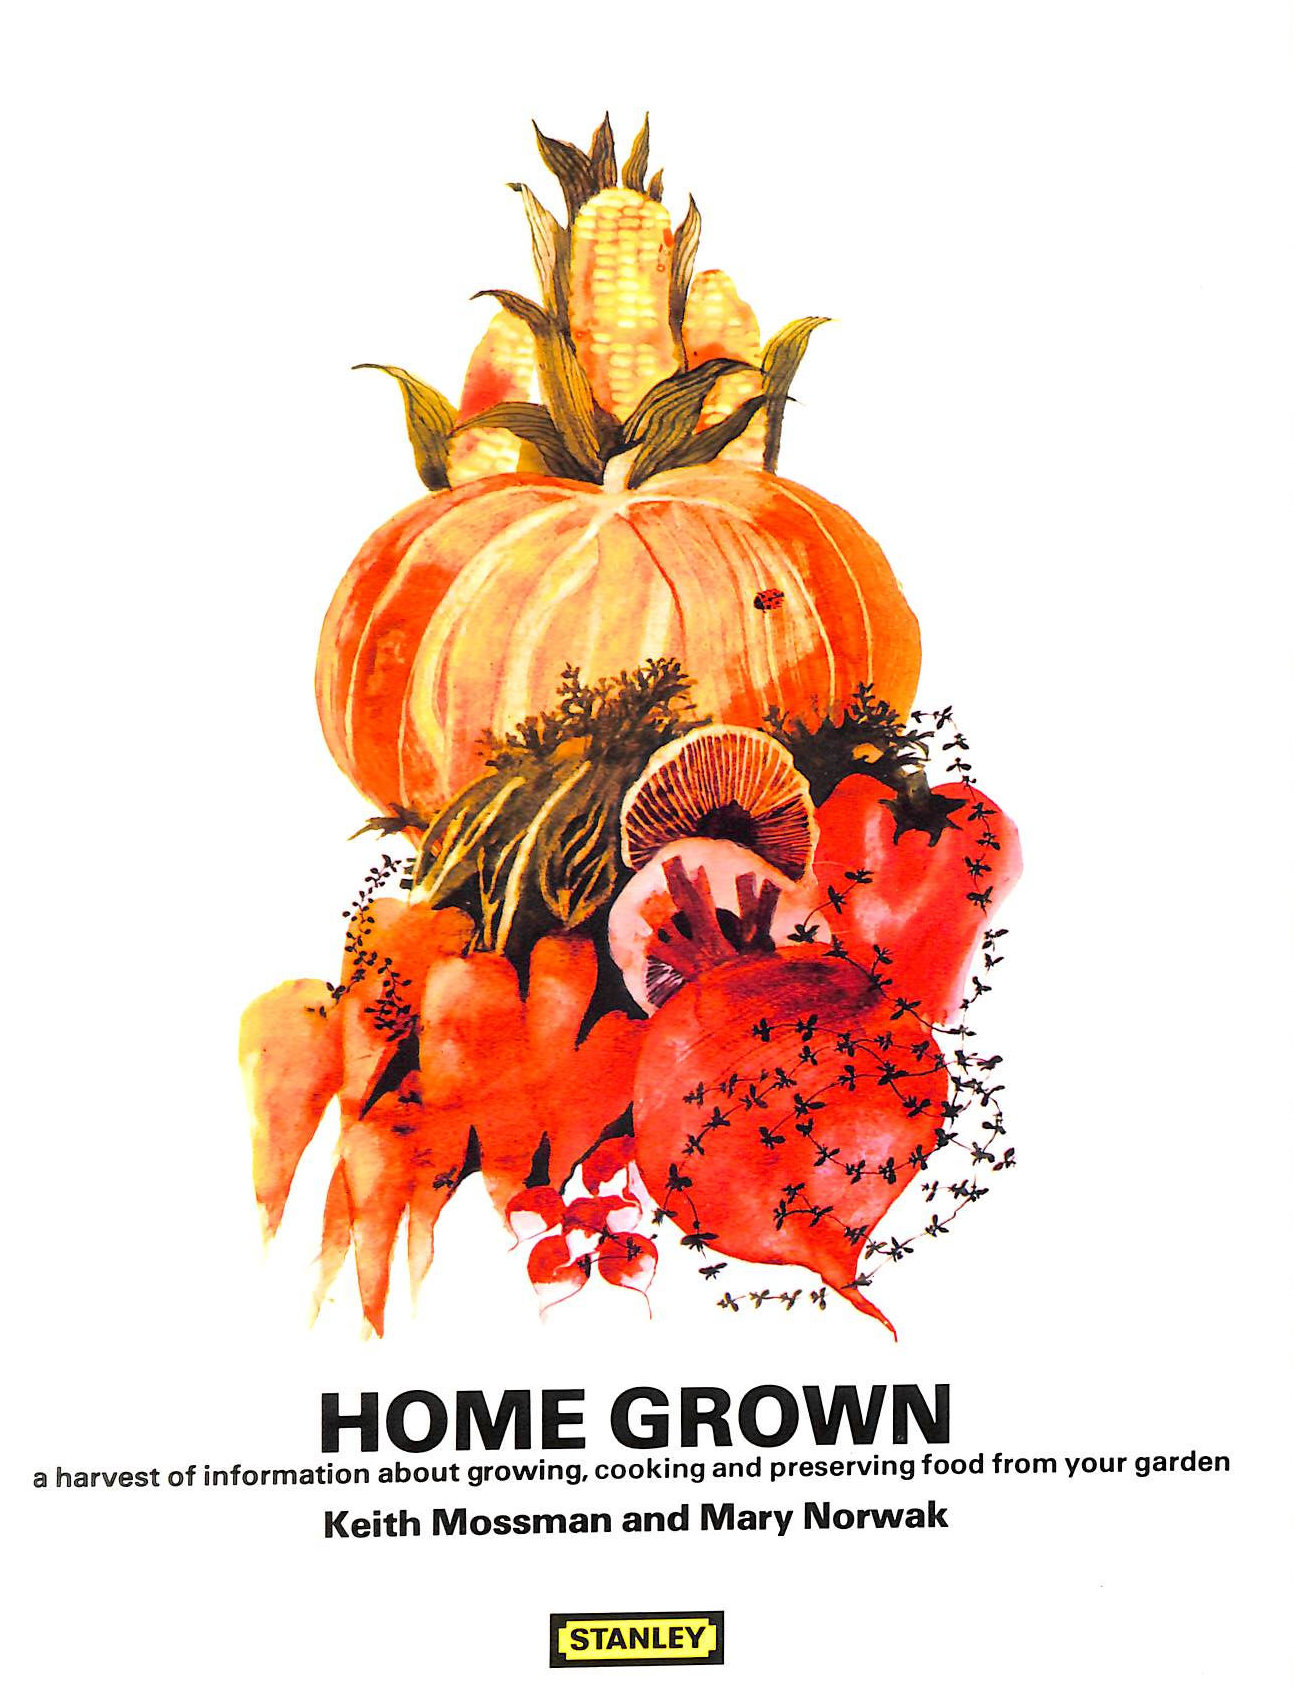 Image for Home Grown: A harvest of information about growing, cooking and preserving food from your garden